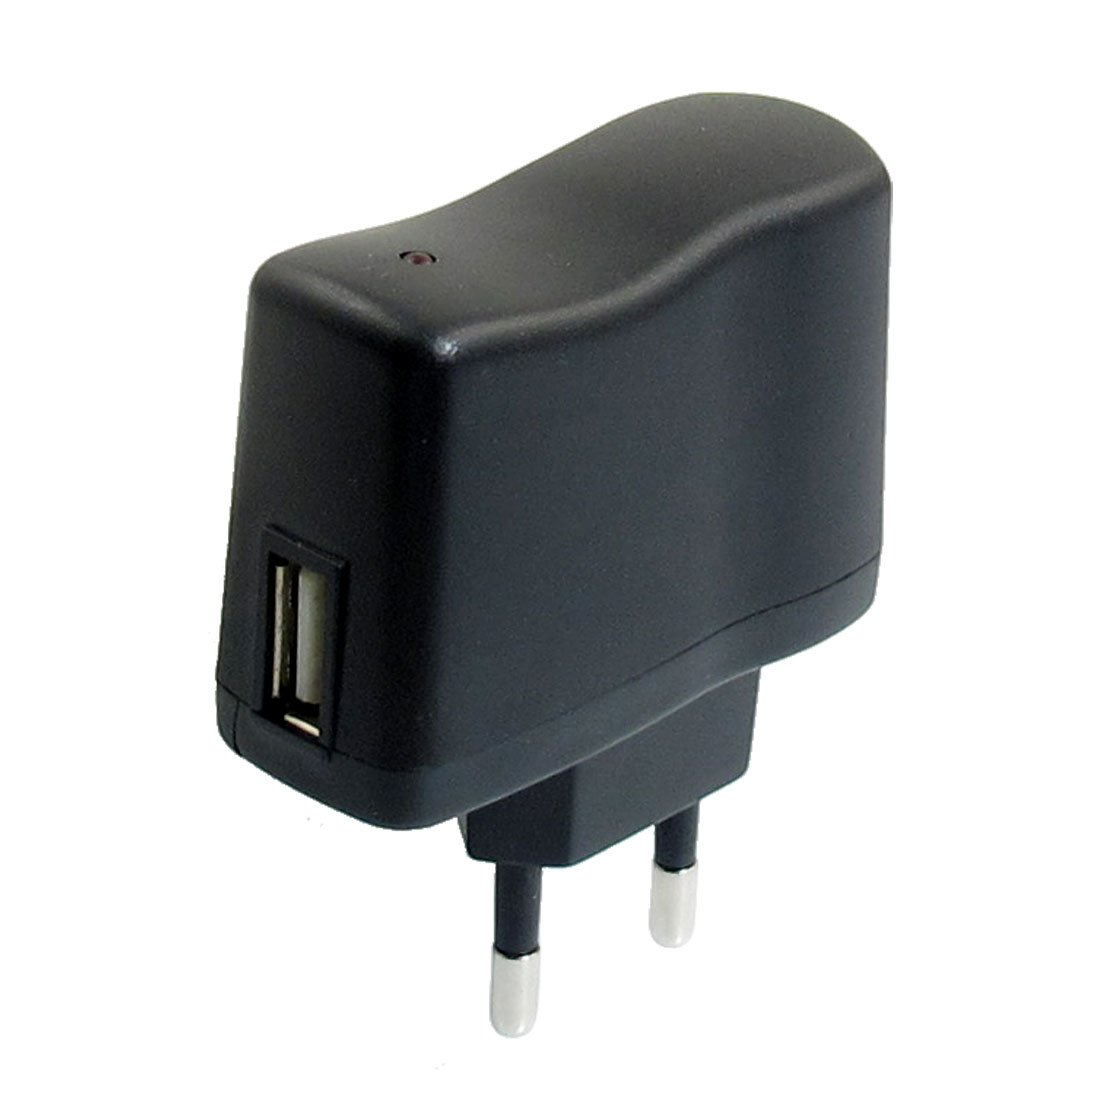 AC 110V-240V to DC 5V 0.5A 500mA USB to EU Plug Power Adapter Charger зарядное устройство для mp3 mp4 плеера brand new ac100 240v usb ac dc 5v wifi cha 029